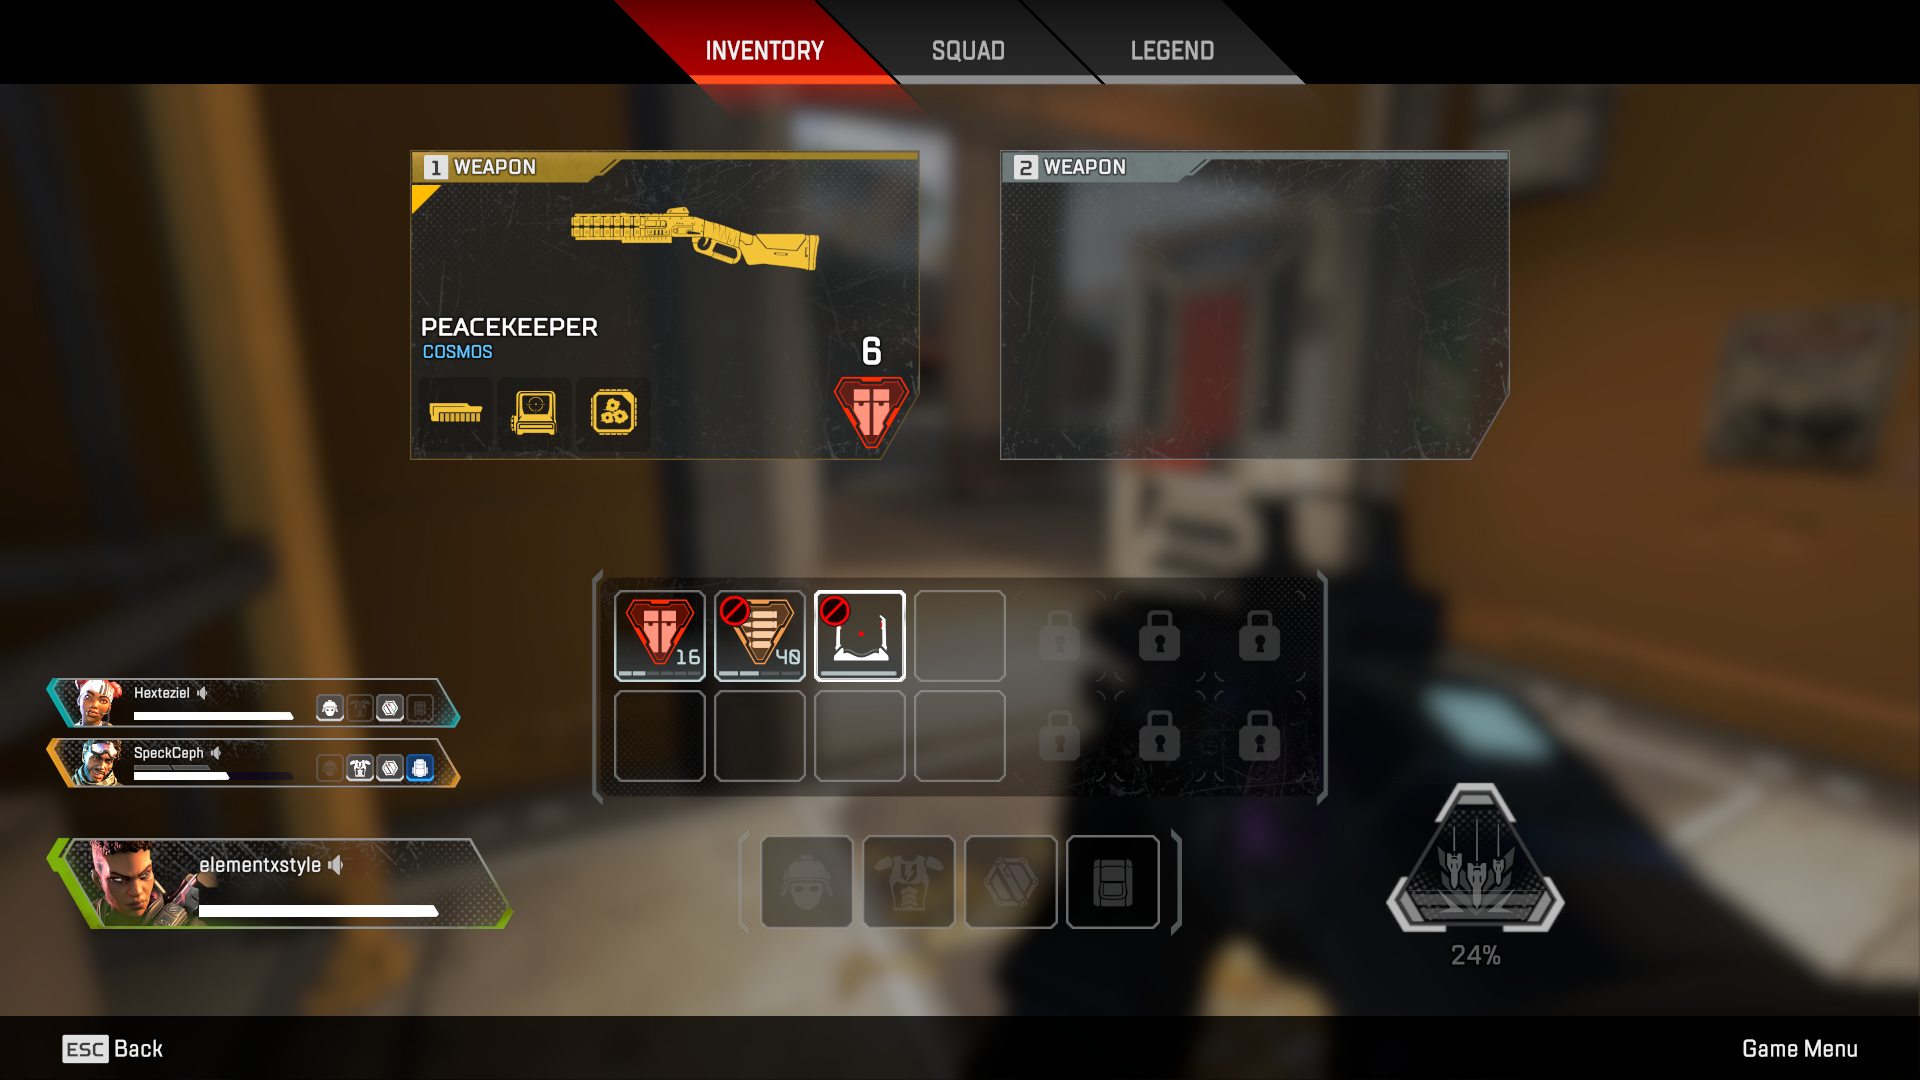 Looting is especially gratifying, with attachments and other useful UX design choices making the gameplay feel fast paced but methodical in approach.